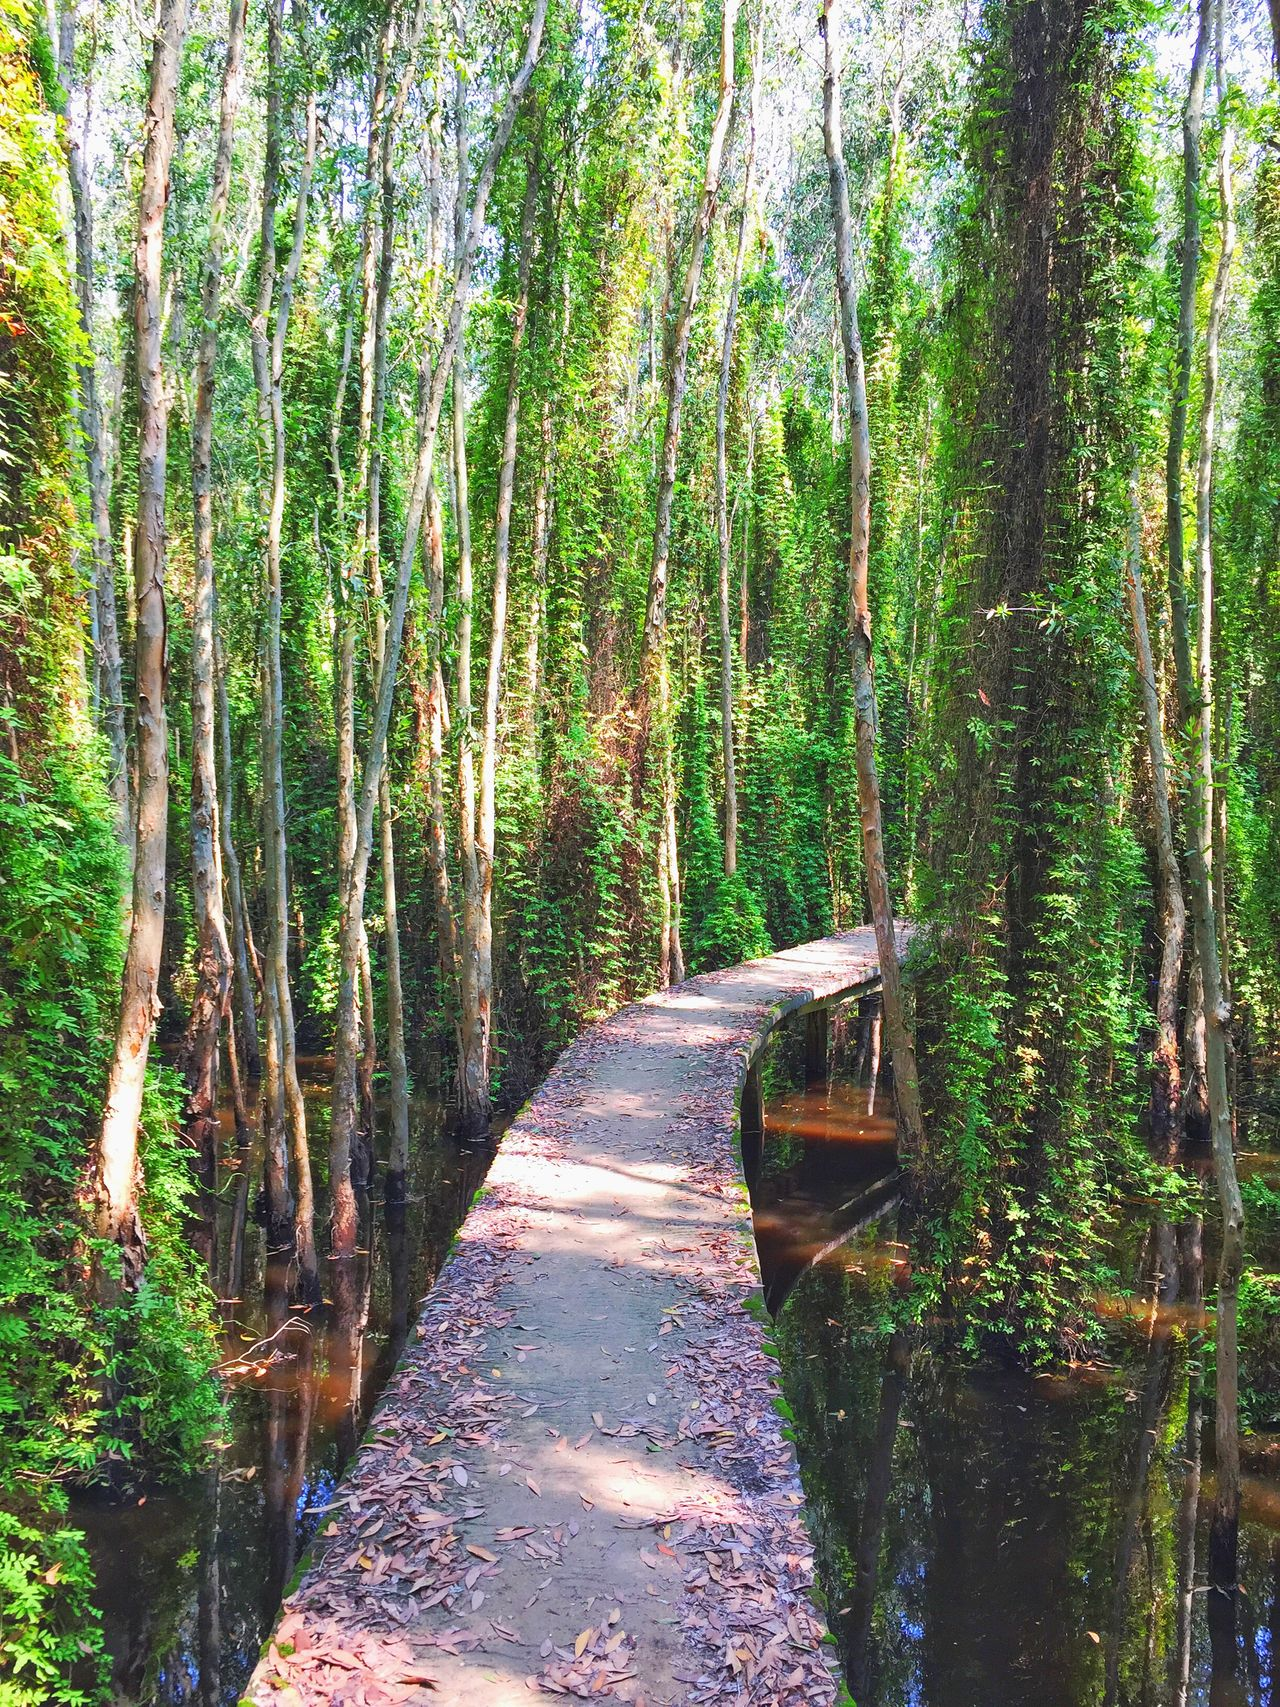 get lost in Melaleuca Forest Vietnam Trees Leaves Road Water Flowers Insects  Longan Thebroadlife